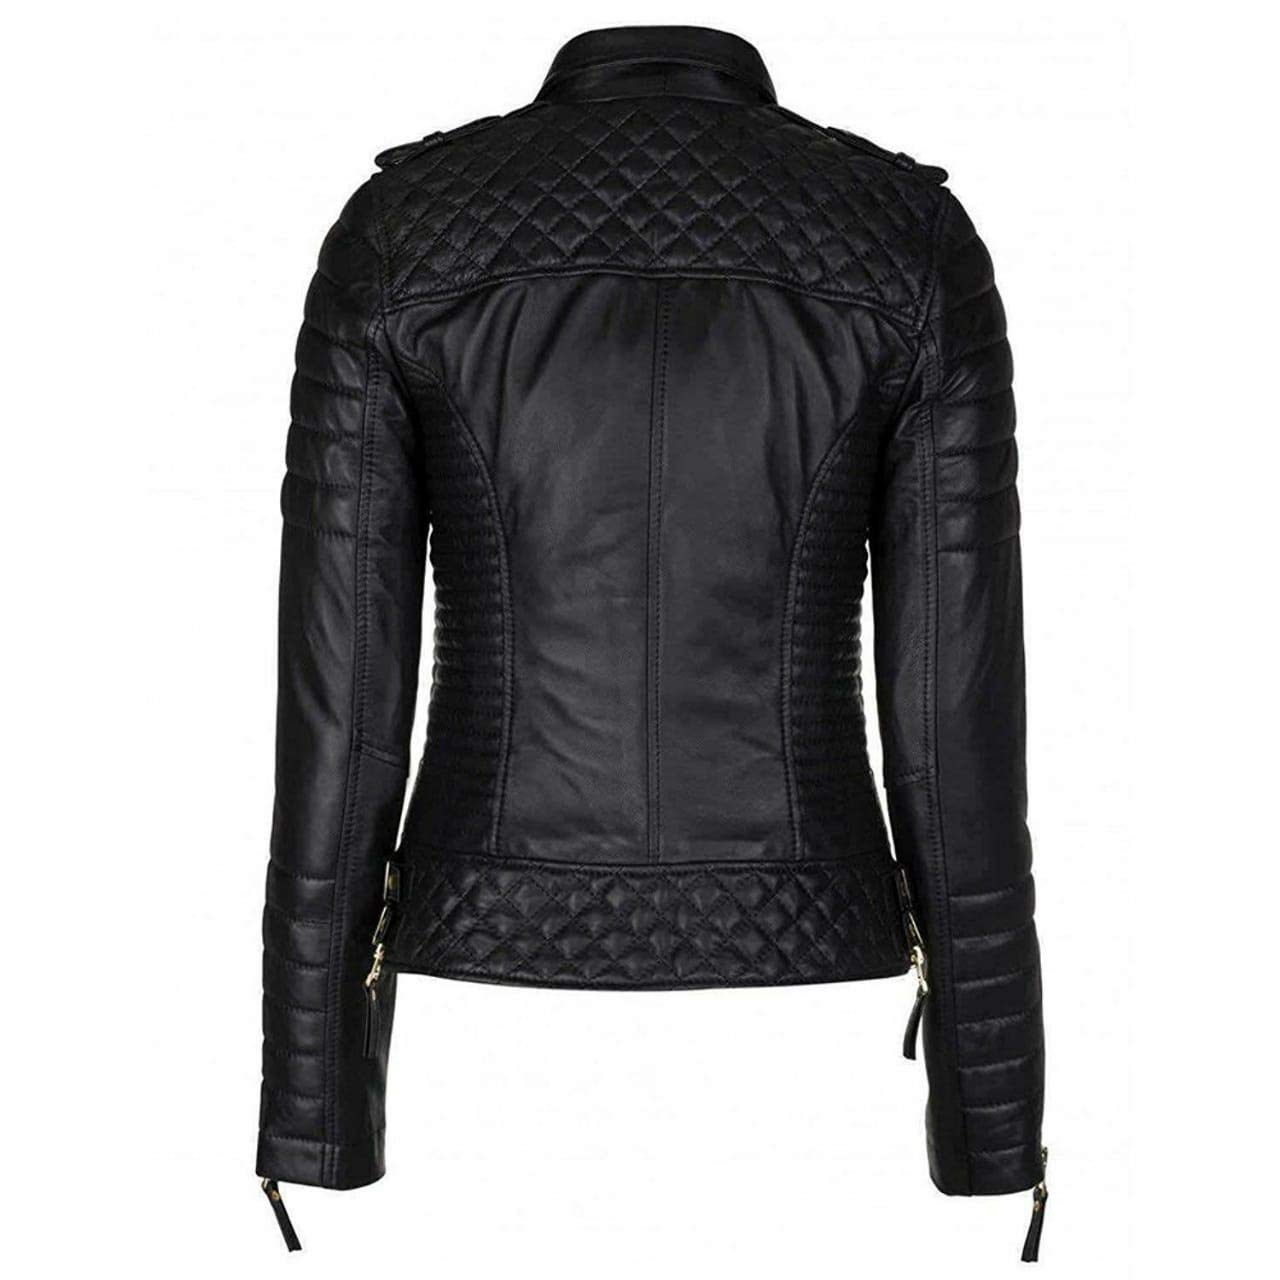 4c2baf9da Urbanoutfitters Women's Brando Quilted Motorcycle Black Leather ...